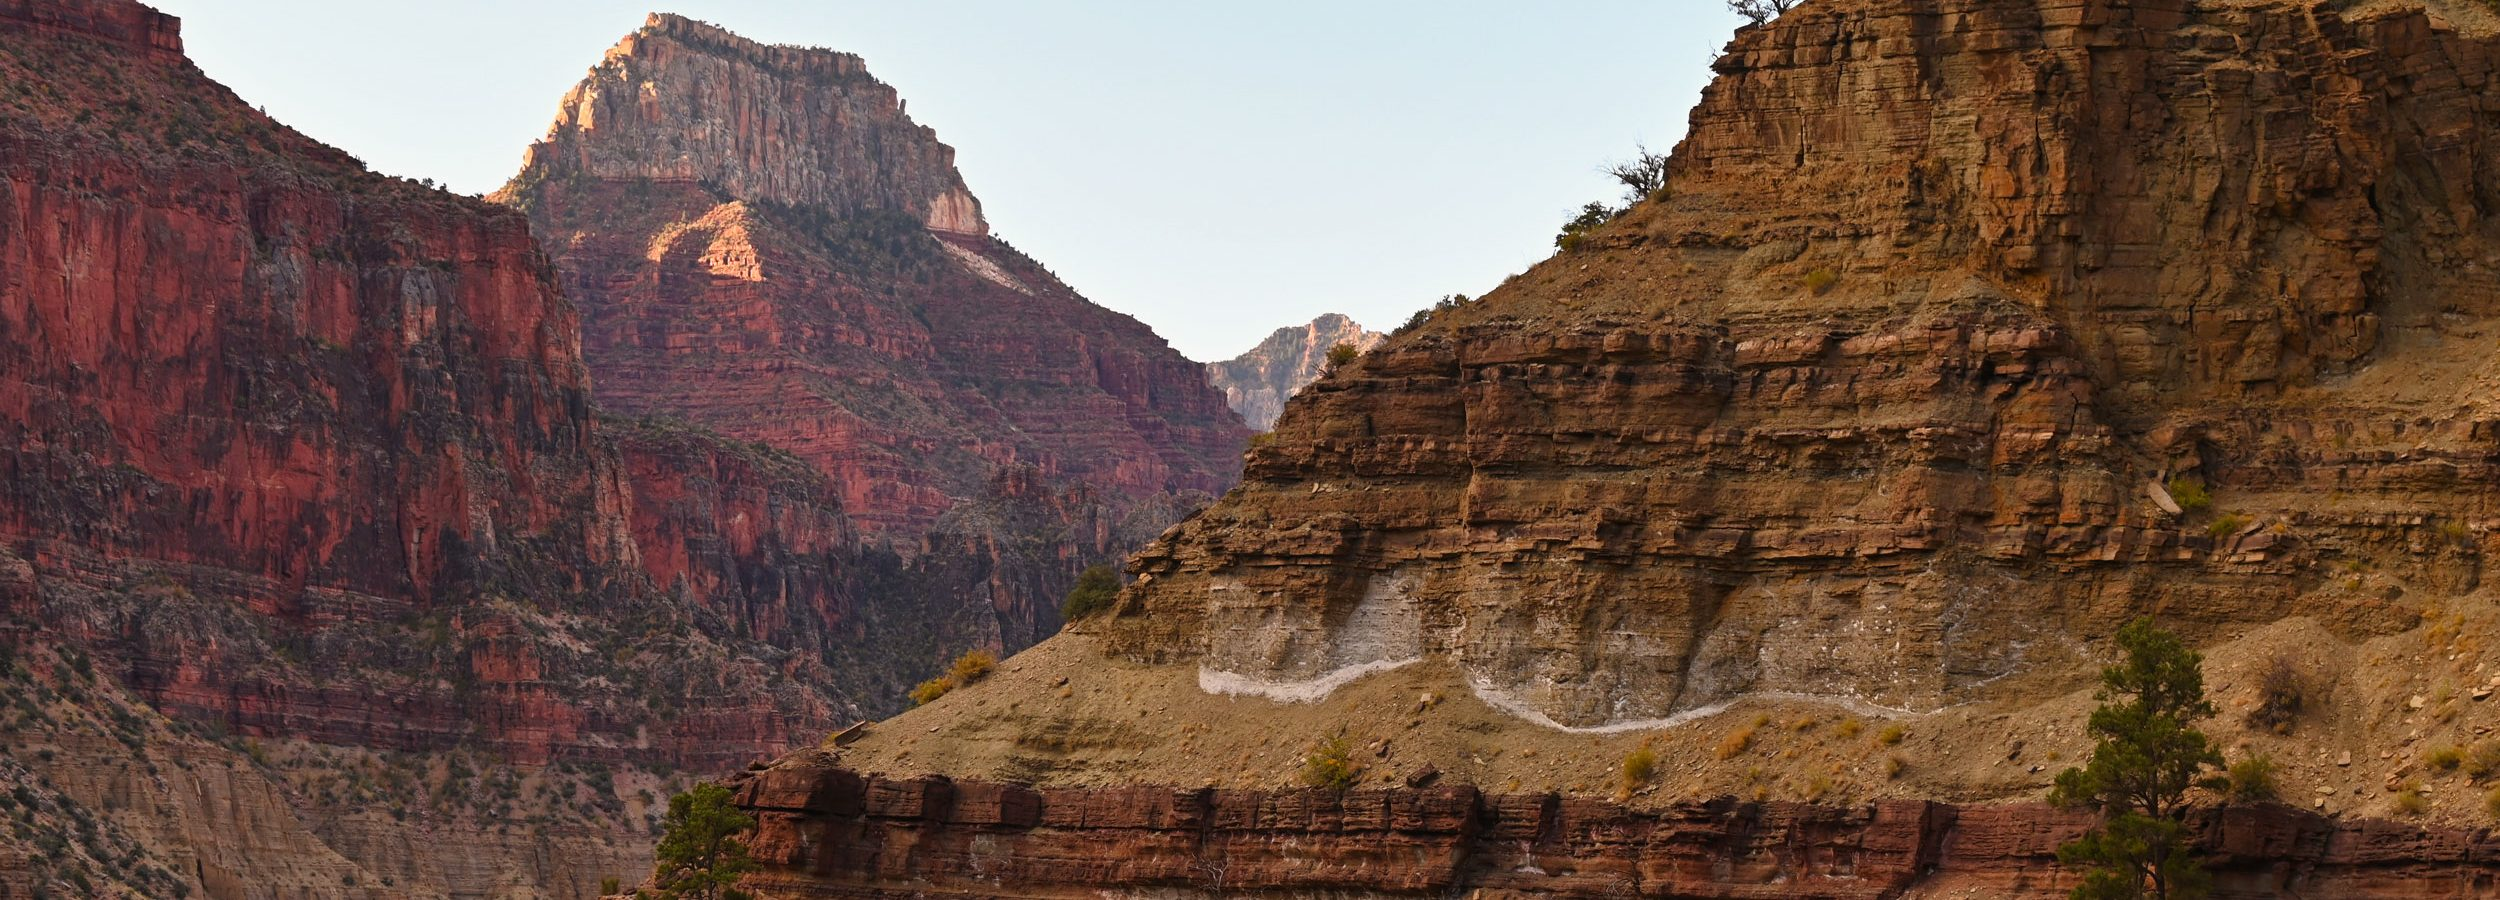 I hiked the Grand Canyon!